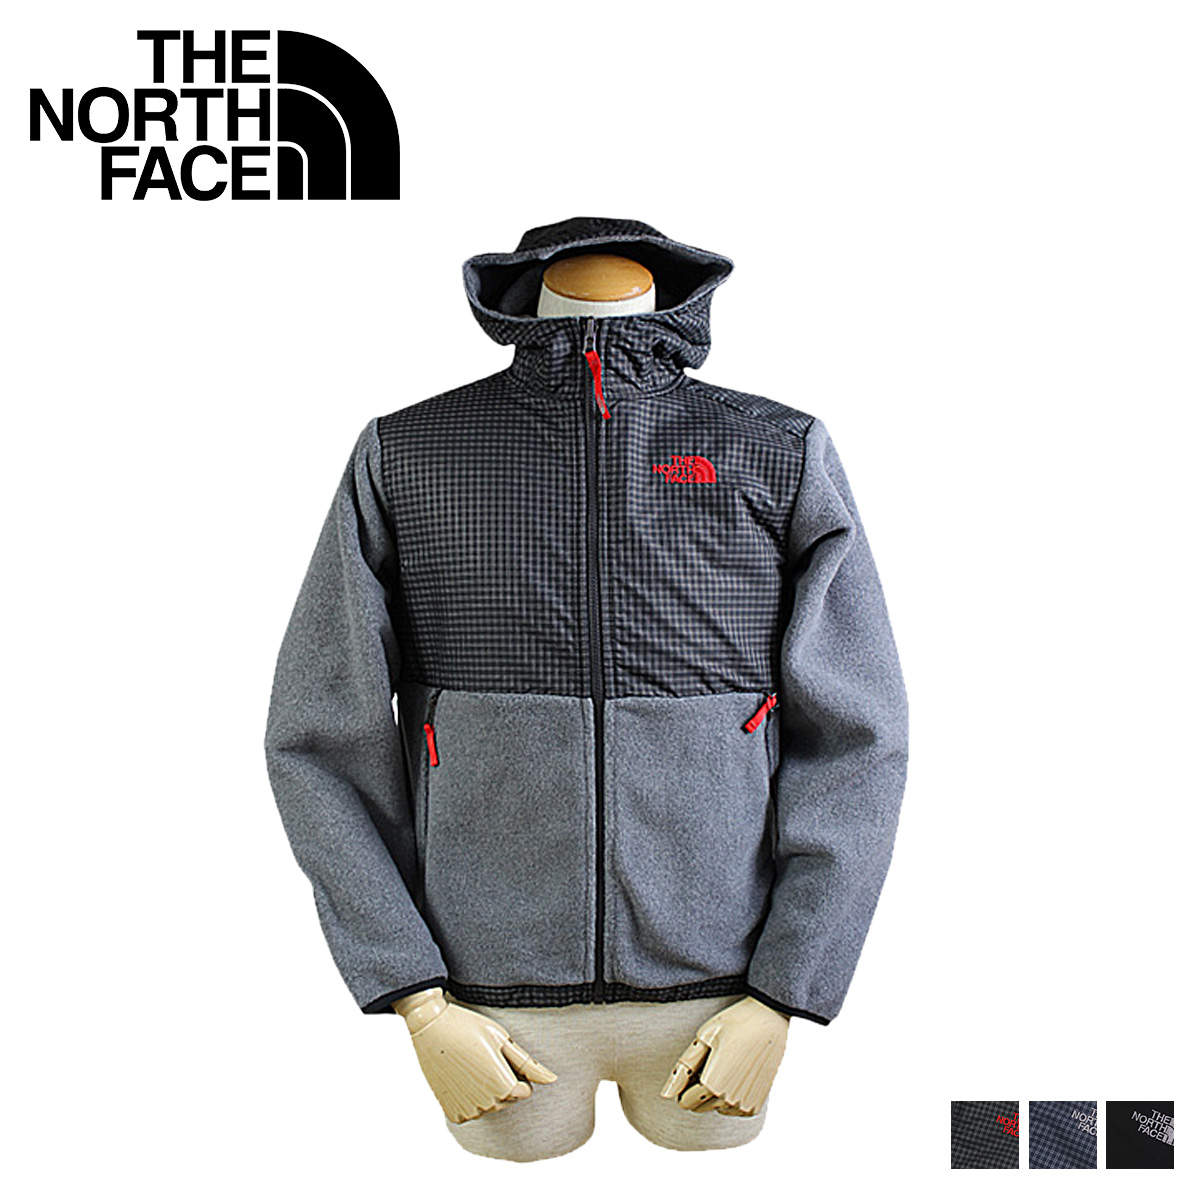 Whats Up Sports Sold Out ザノースフェイス The North Face Kids